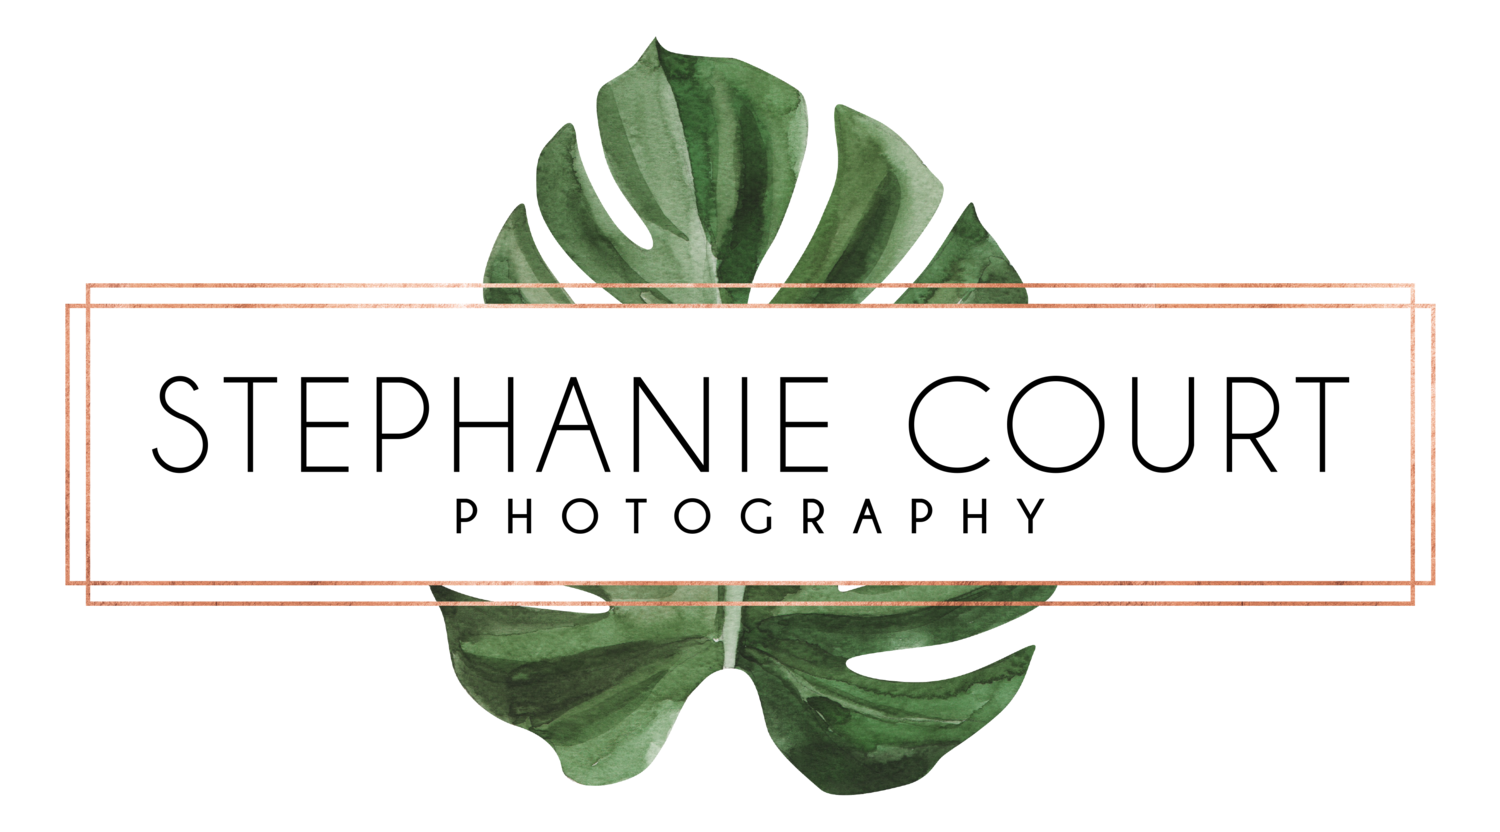 Stephanie Court Photography